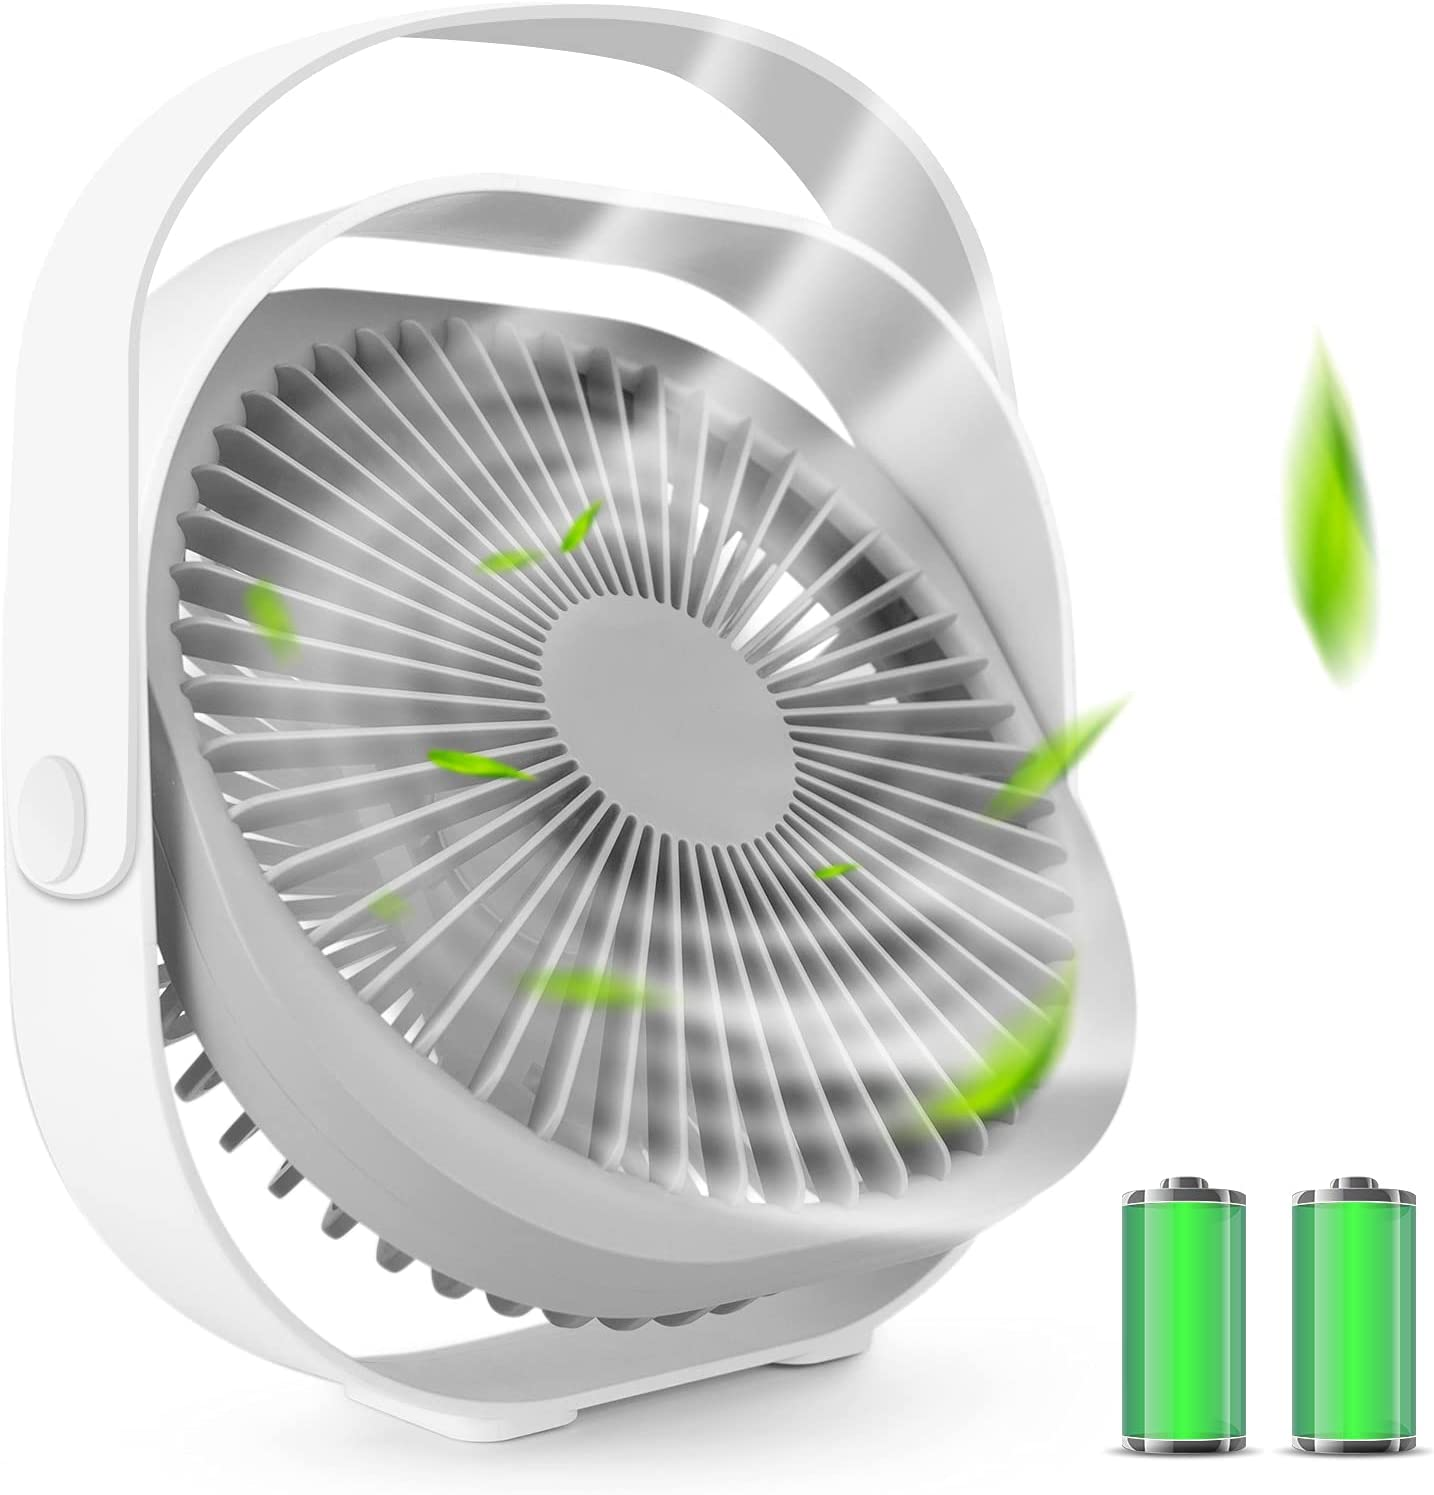 Desk Fan, Portable Personal Table USB Fan 4000mAh Rechargeable 8'' Small Electric Cooling Desktop Fan, Adjustable 3 Speeds Strong Airflow 360 Rotation Ultra Quiet for Bedroom Home Office Travel (White)